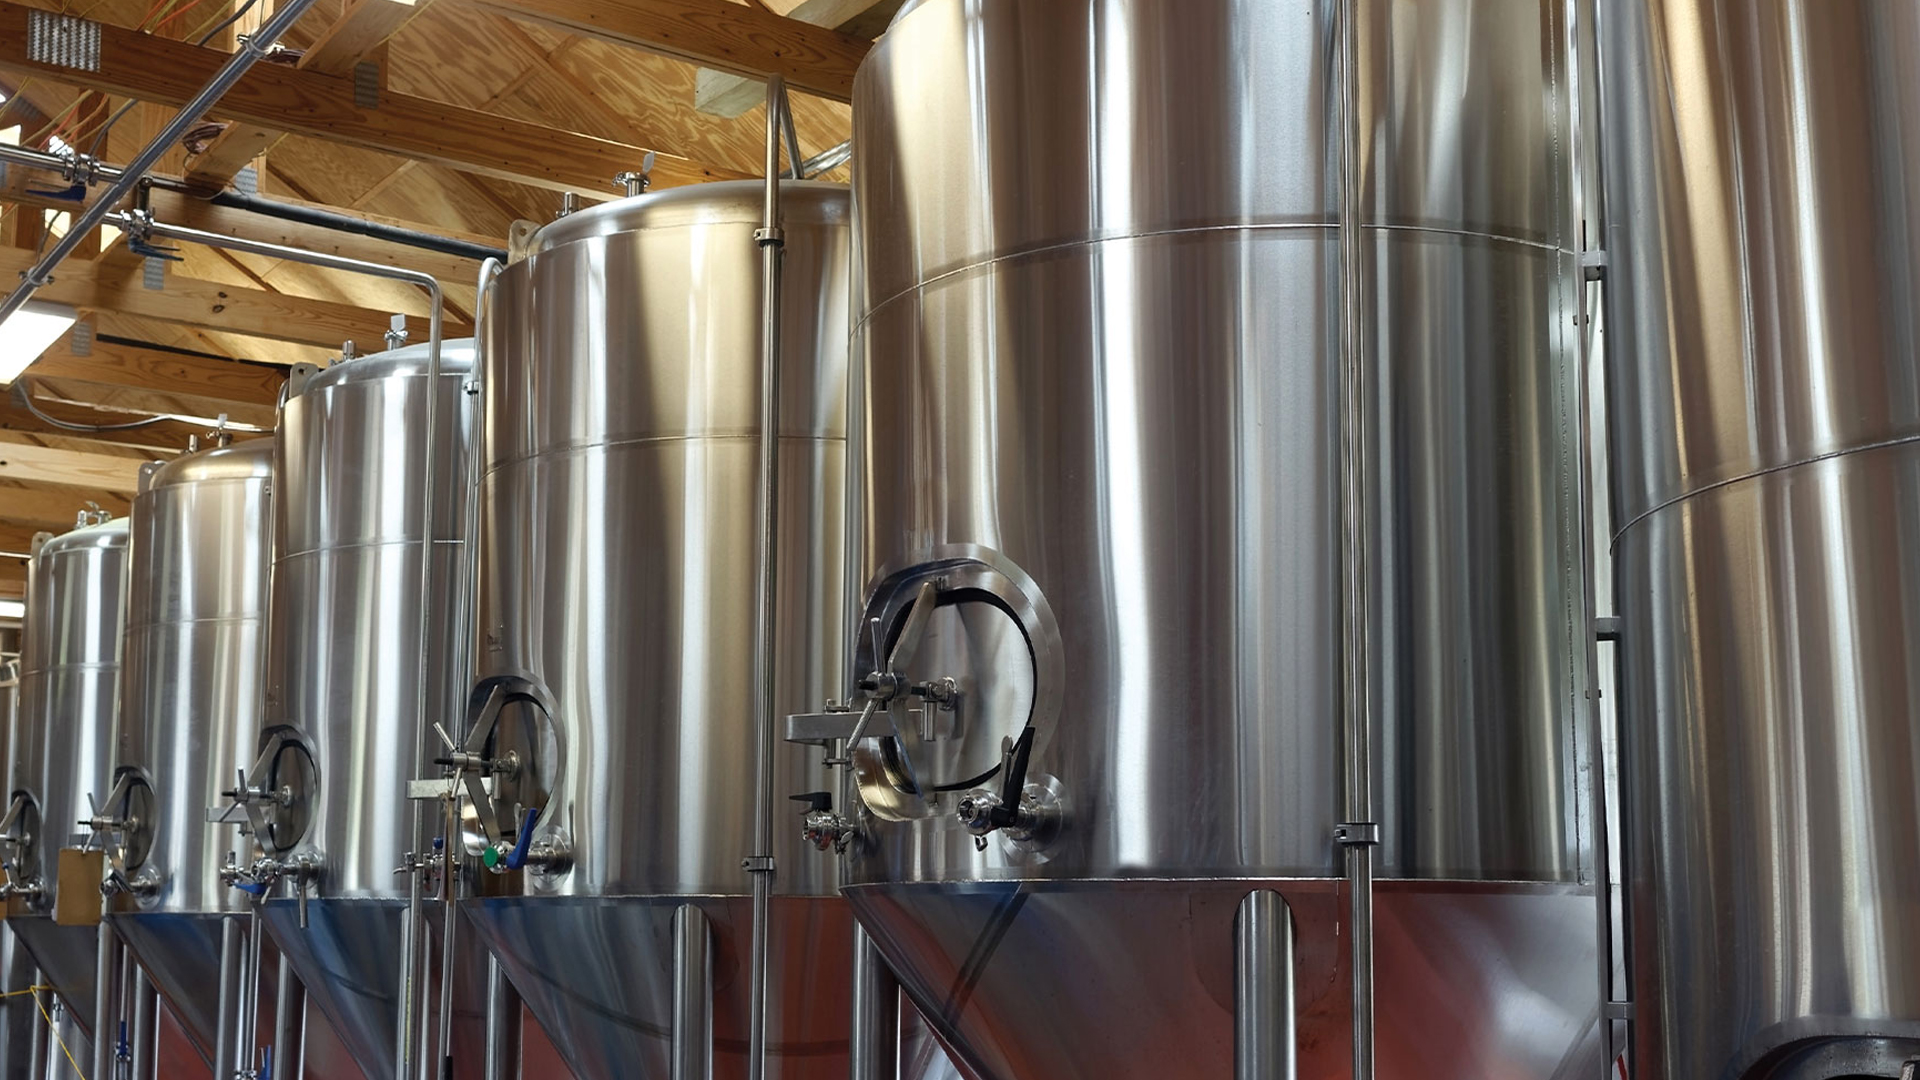 Building the Brewery of the Future - With IoT Sensors and IoT Gateway